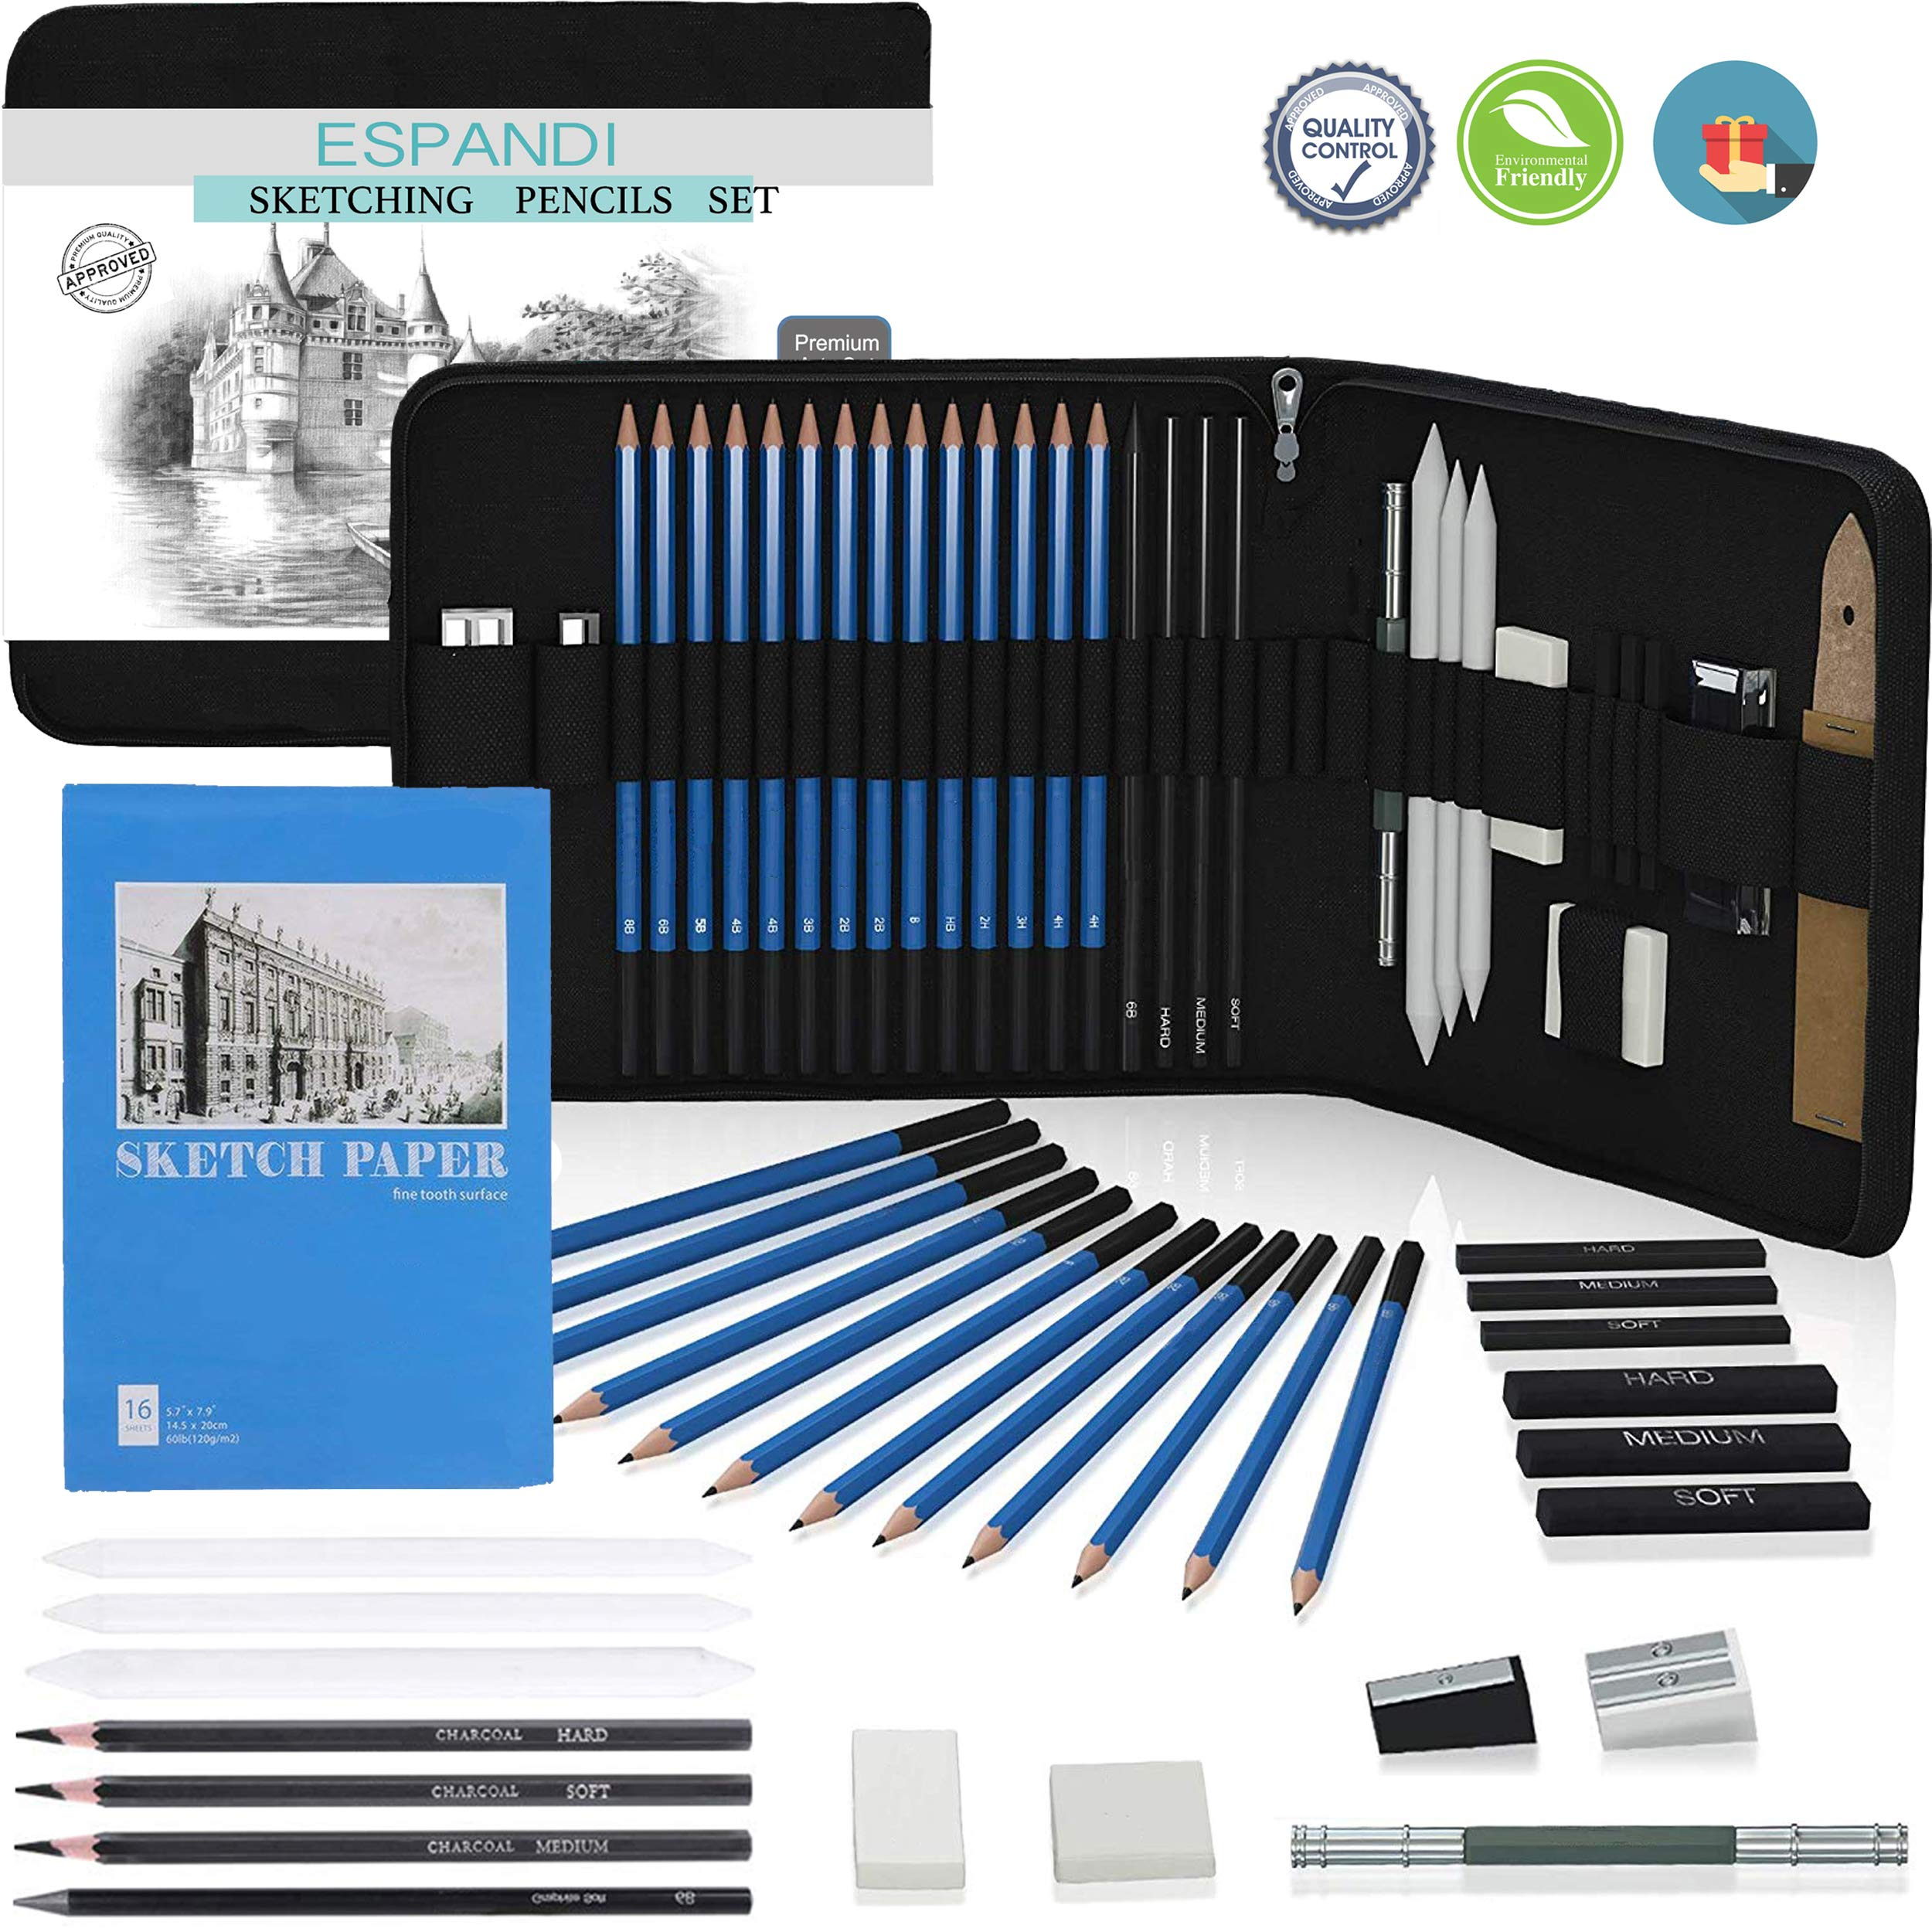 Iespandi Charcoal Drawing and Sketching Pencil Set for Beginners & Professionals; H&B Graphite Shading Wood Pencils; Art Supplies Kit for Artists; Tools and Sketch Pad for Adult, Teens and Kids by Iespandi